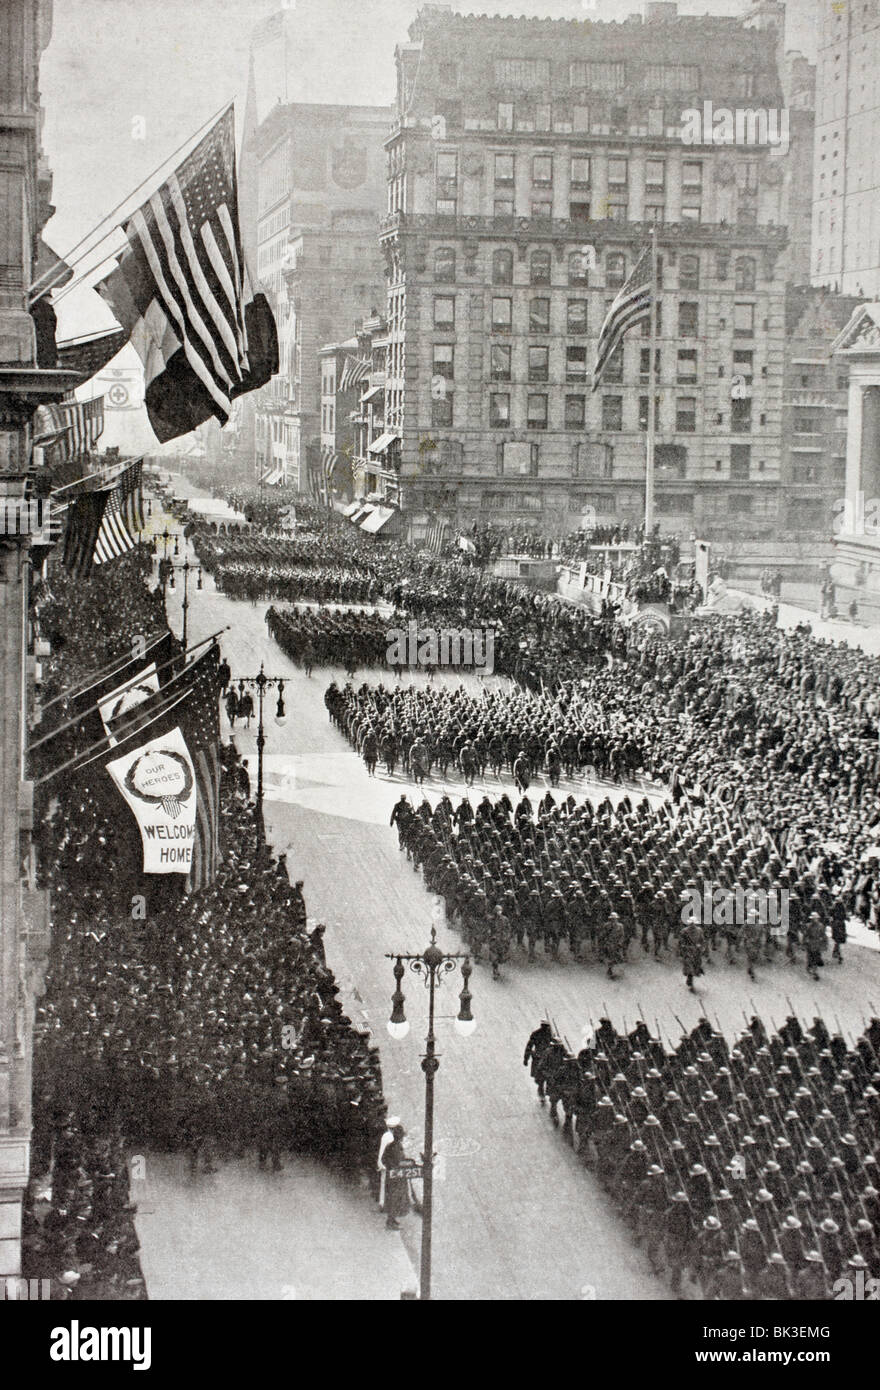 American troops marching down Fifth Avenue in New York on their return from Europe after the First World War. Stock Photo